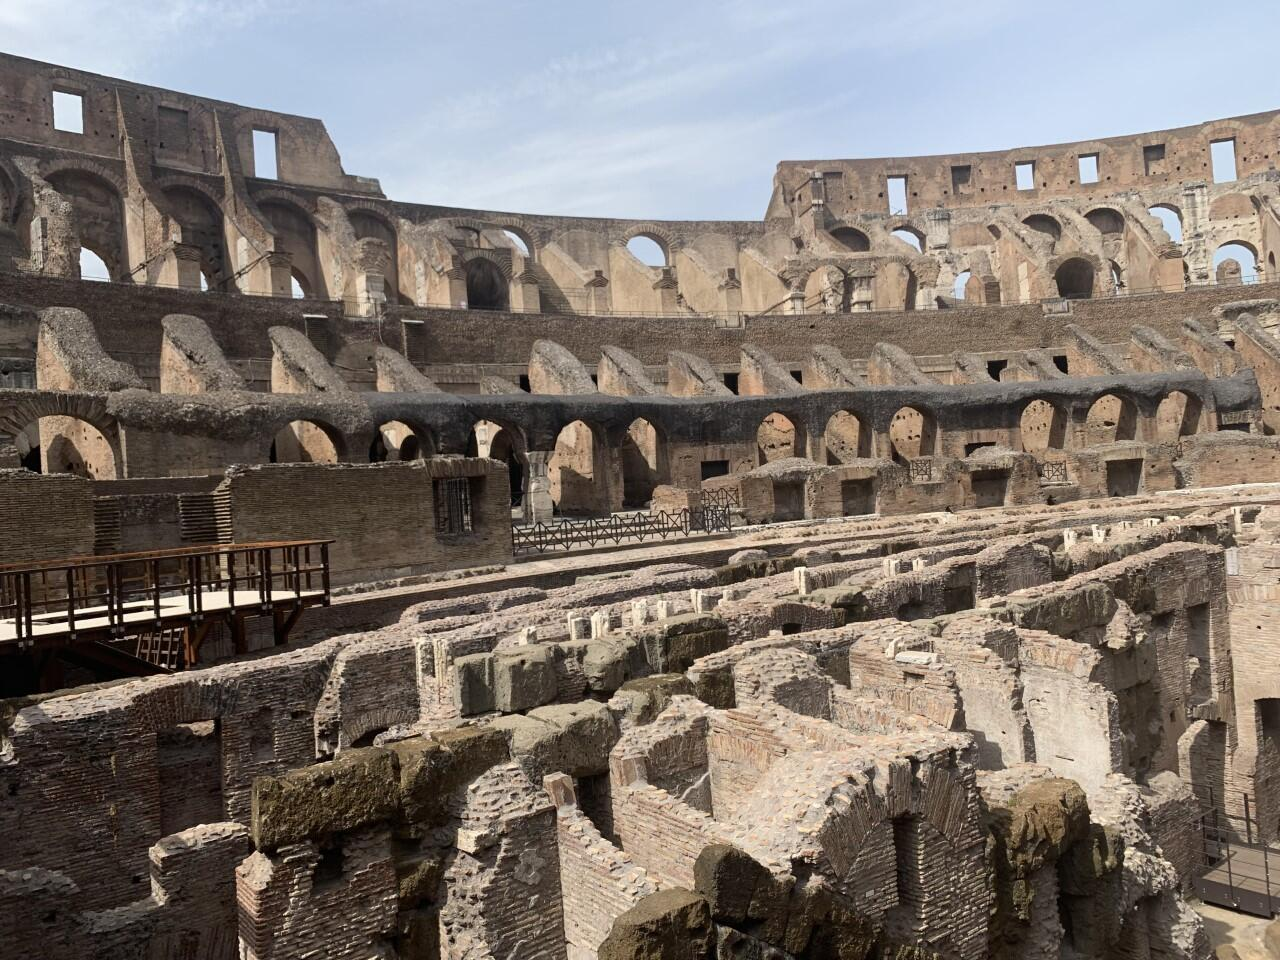 A view of the newly-restored underground section of the Colosseum monument in Rome. It took a team two years to complete the works on the 15,000 square-metre area of arched passageways and chambers used for wild animals and performers. It opened to the public in June 2021.